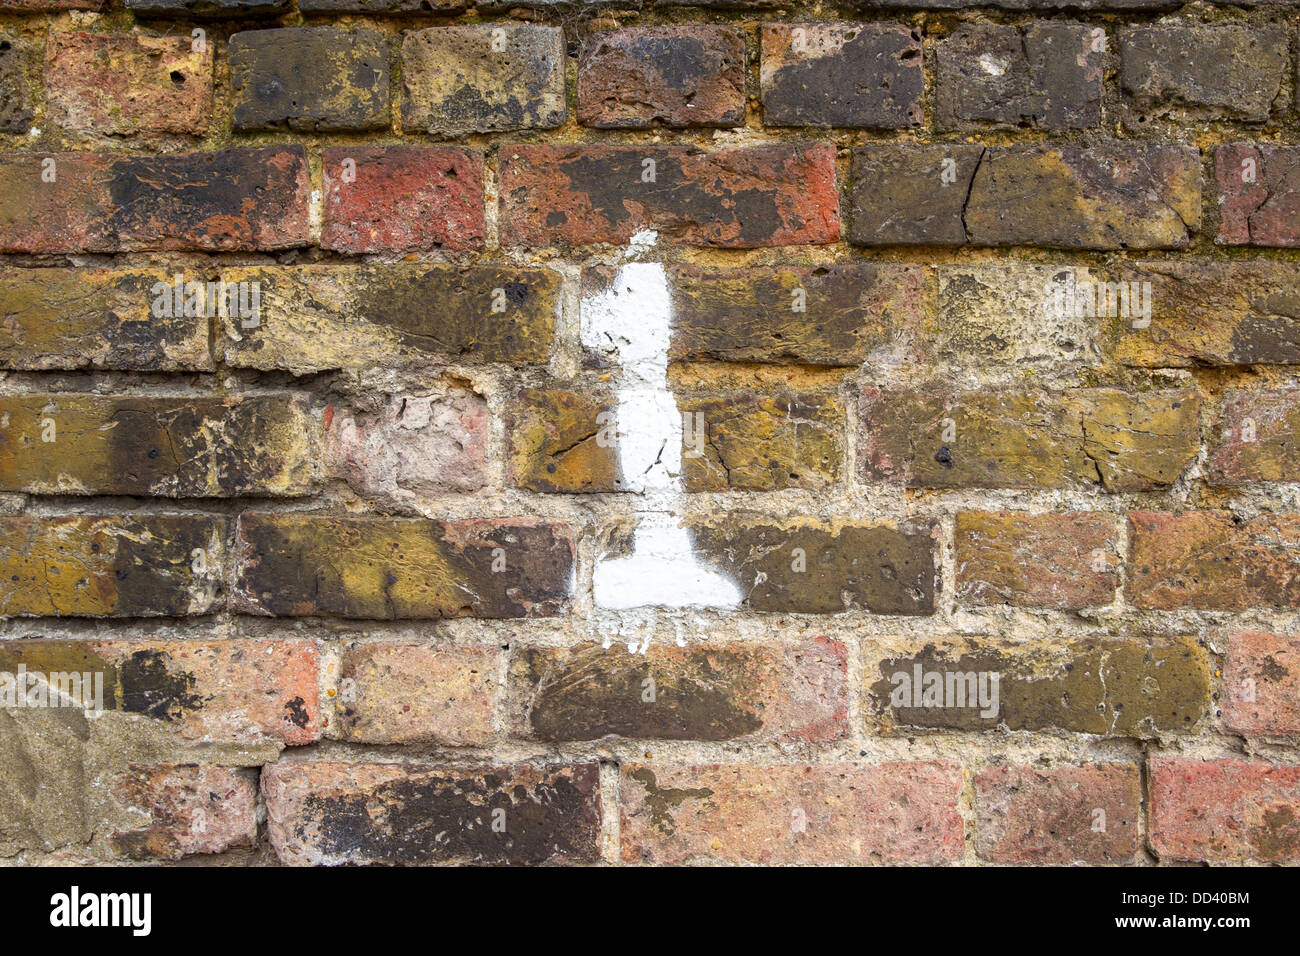 NUMBER 1 ON PAINTED ON A BRICK WALL, SOUTHEND-ON-SEA, ESSEX, UK - Stock Image